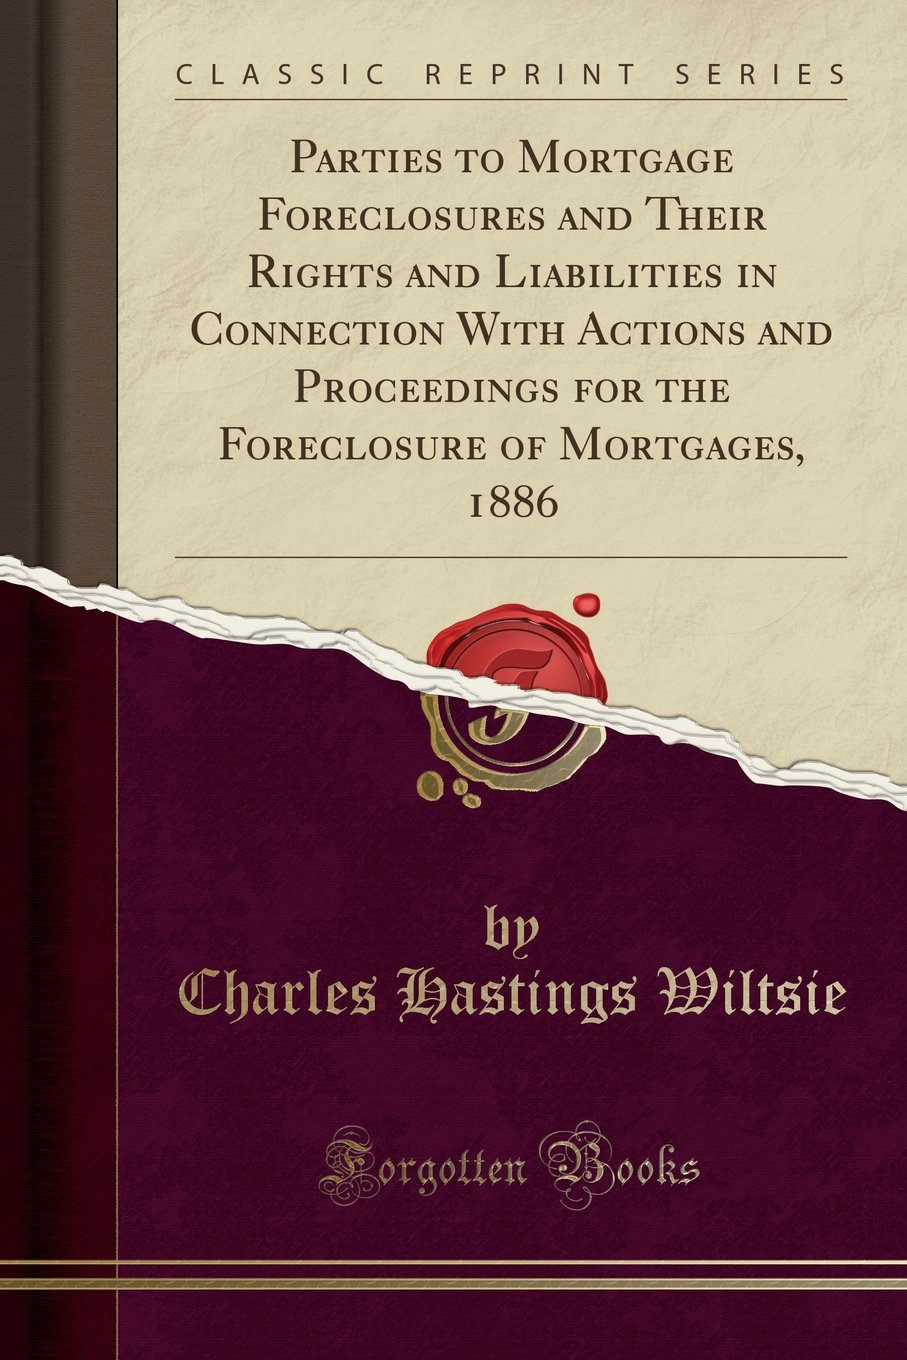 Parties to Mortgage Foreclosures and Their Rights and Liabilities in Connection With Actions and Proceedings for the Foreclosure of Mortgages, 1886 (Classic Reprint) ebook